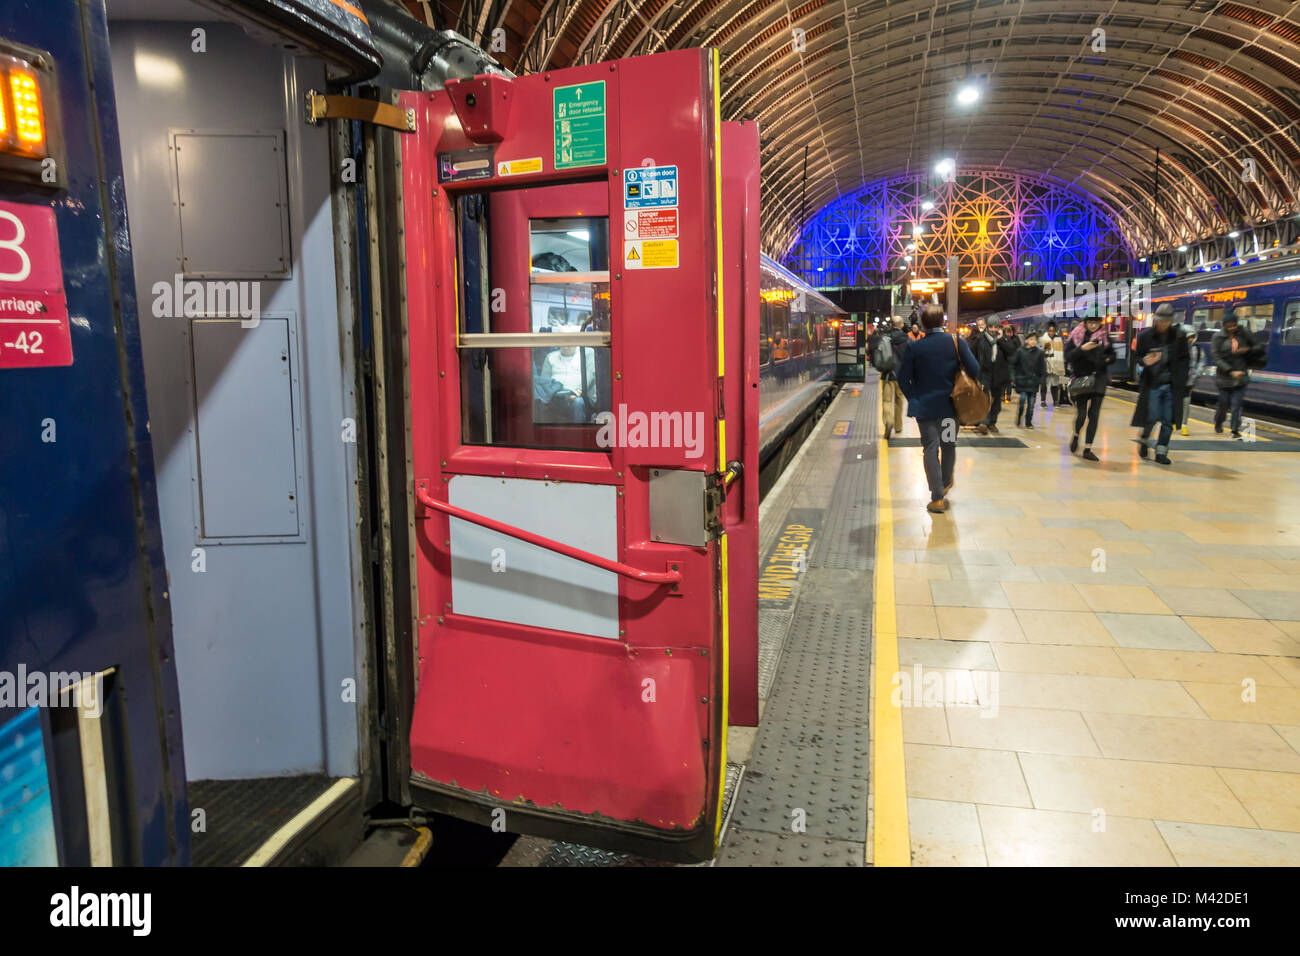 Old fashioned slam doors open on a train taking on passengers at Padding Railway Station in London UK & Old fashioned slam doors open on a train taking on passengers at ...